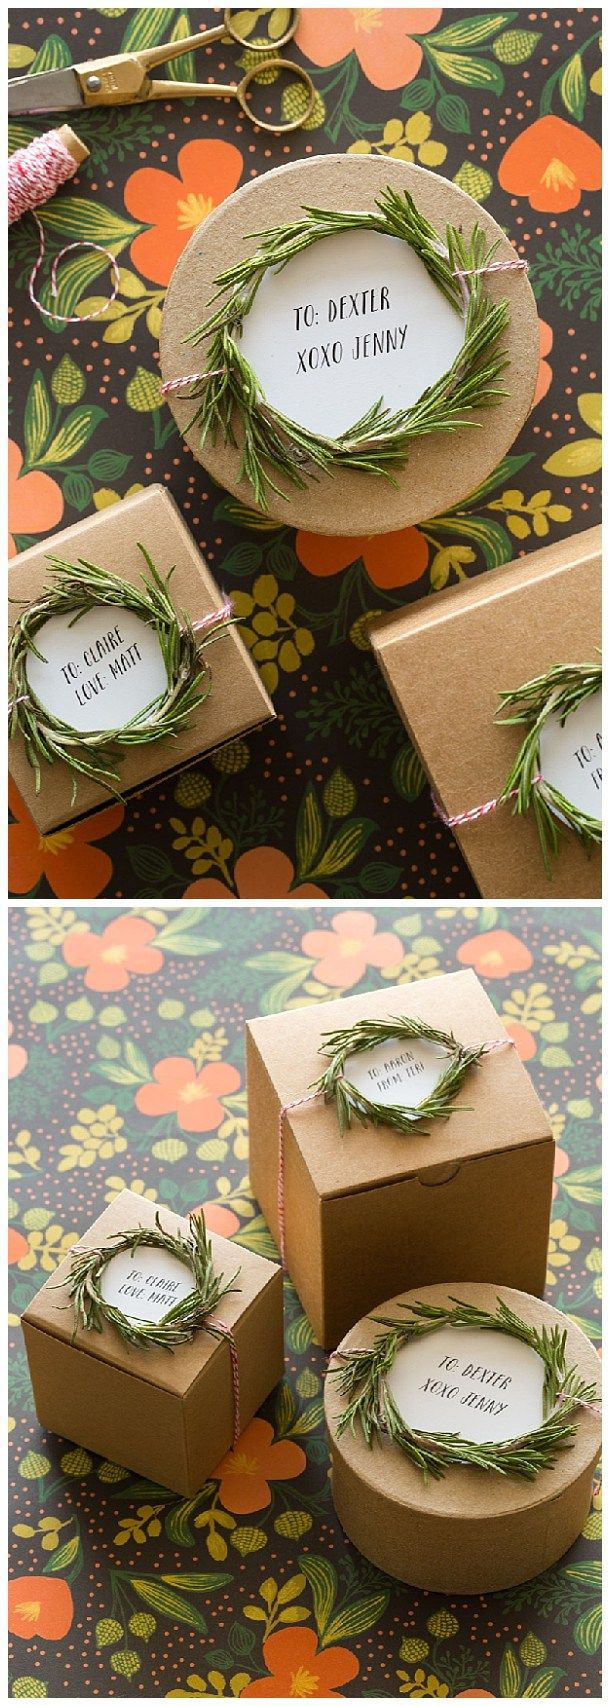 Handmade Rosemary Wreath Gift Toppers Tutorial via Spoon Fork Bacon - The BEST DIY Gift Toppers - Pretty and EASY Inexpensive Handmade Ideas for Christmas, Birthdays, Holidays and any special occasion!